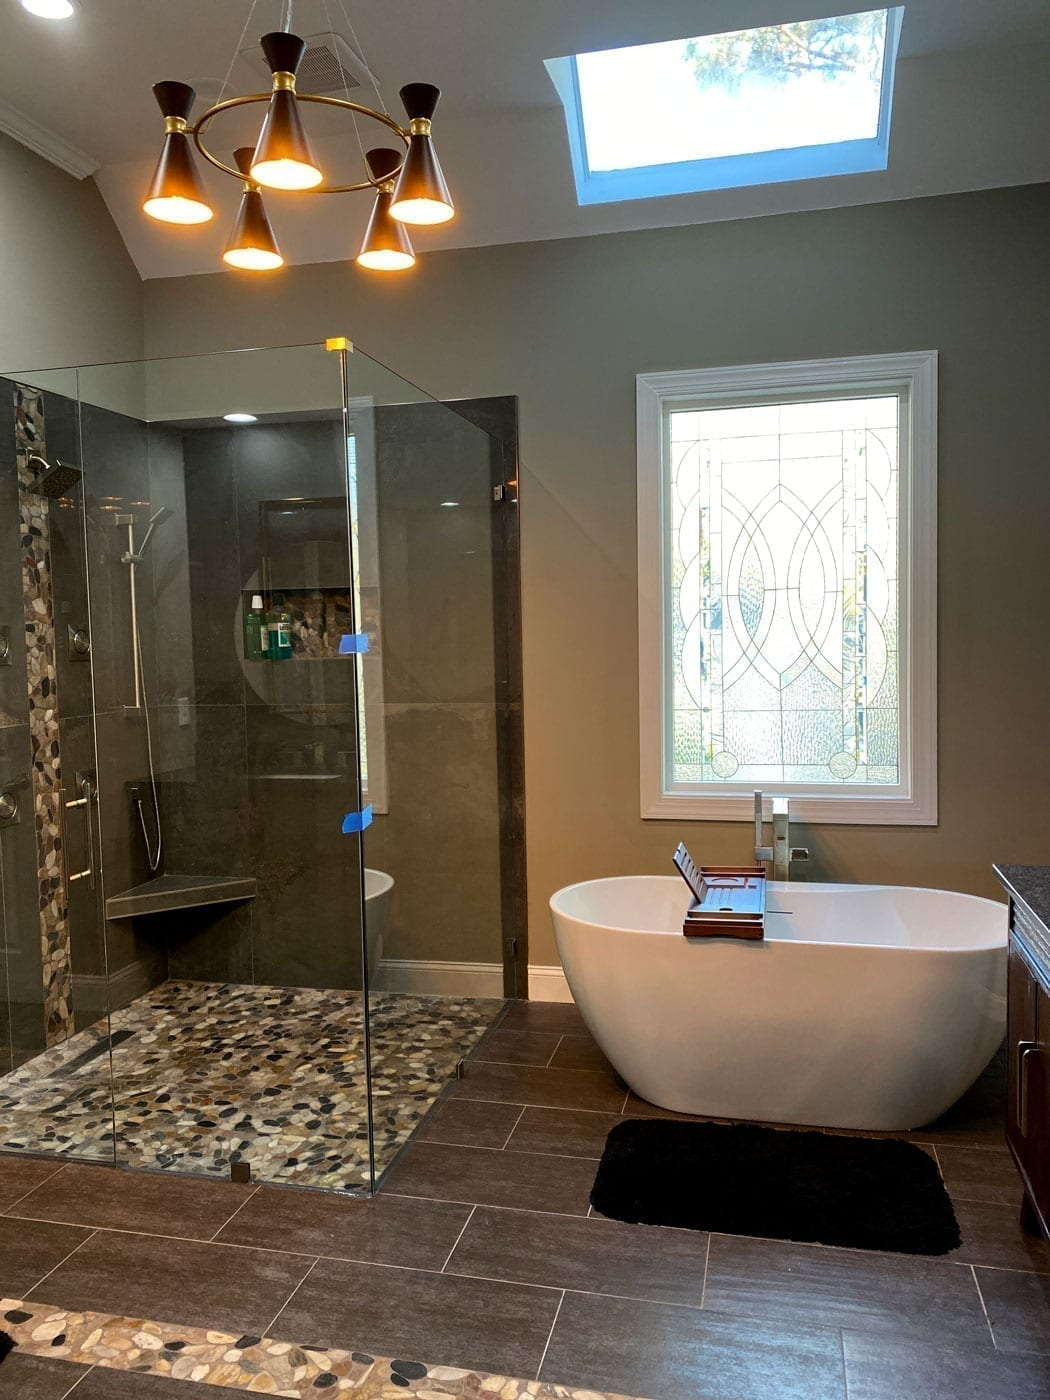 Stained glass framed installed over a bathtub